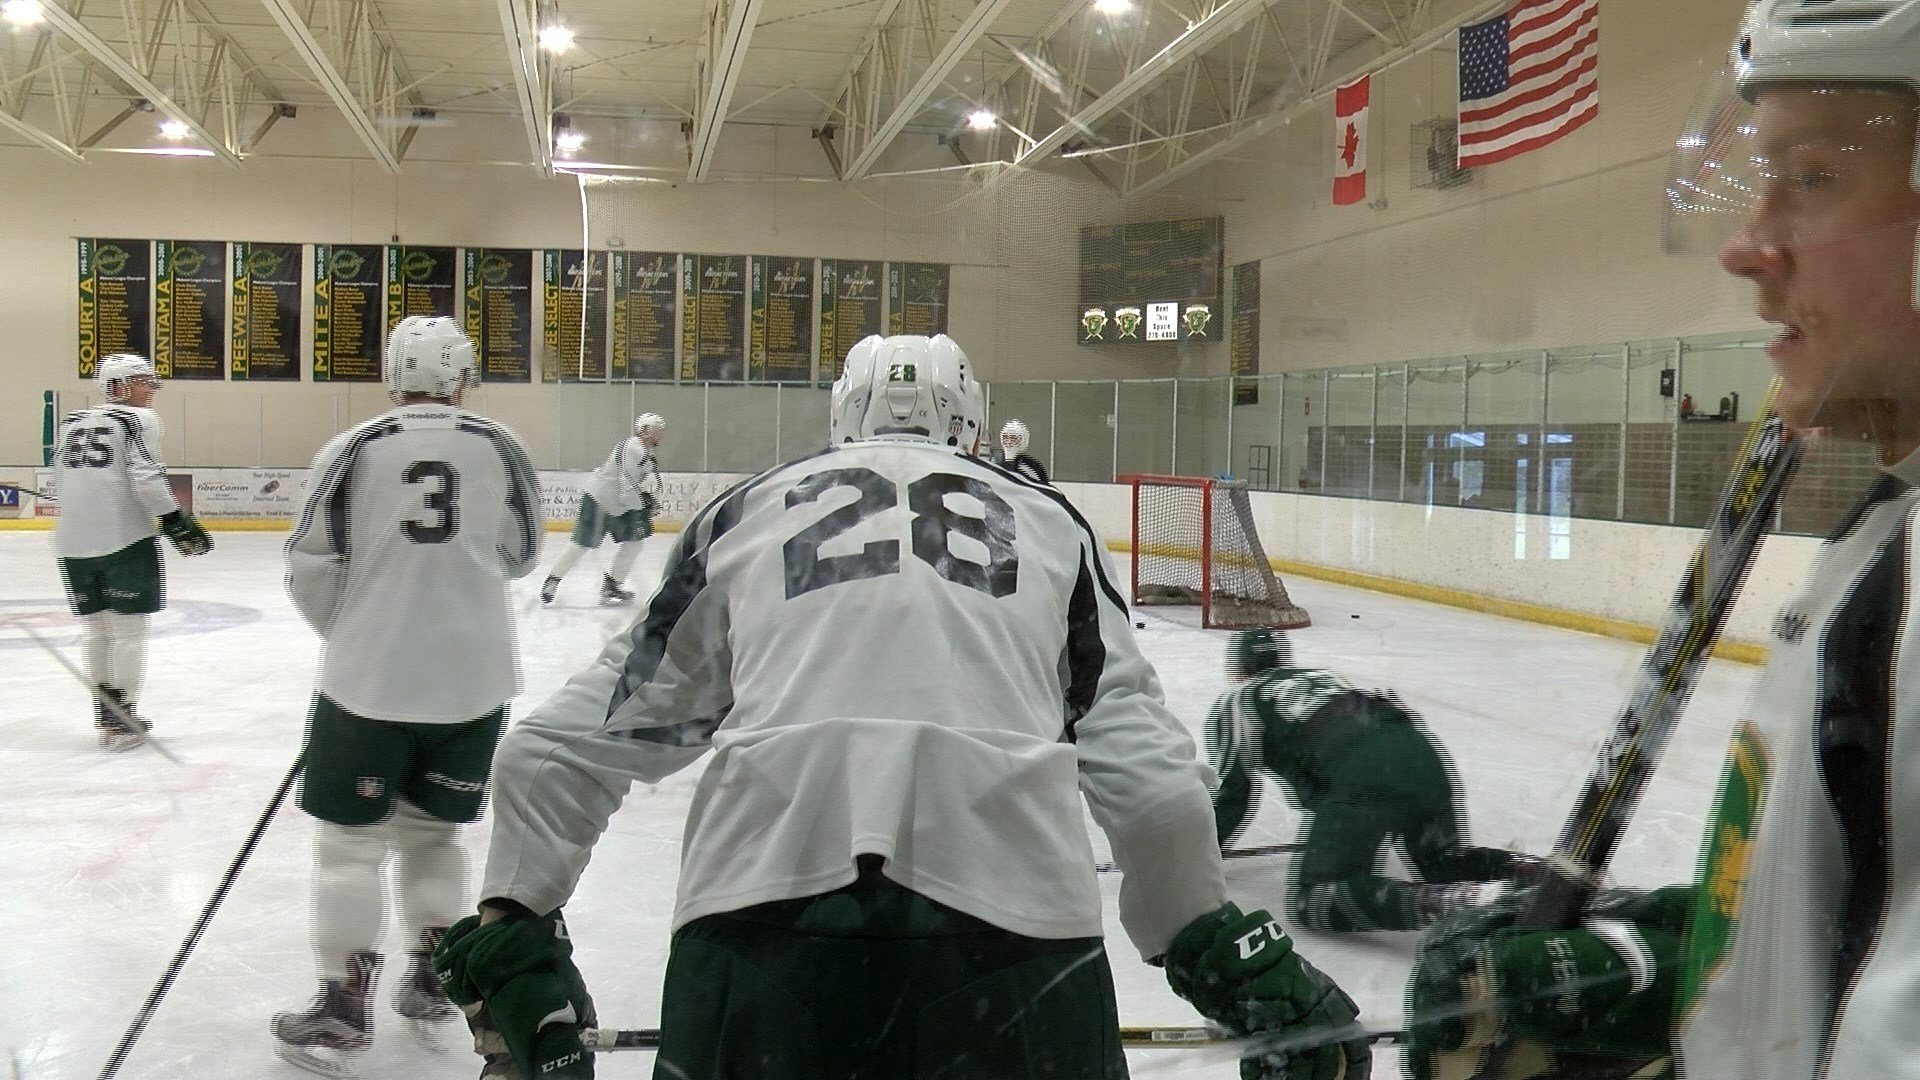 The USHL's deadline for final roster cut-downs was 6:00 p.m. on Tuesday.